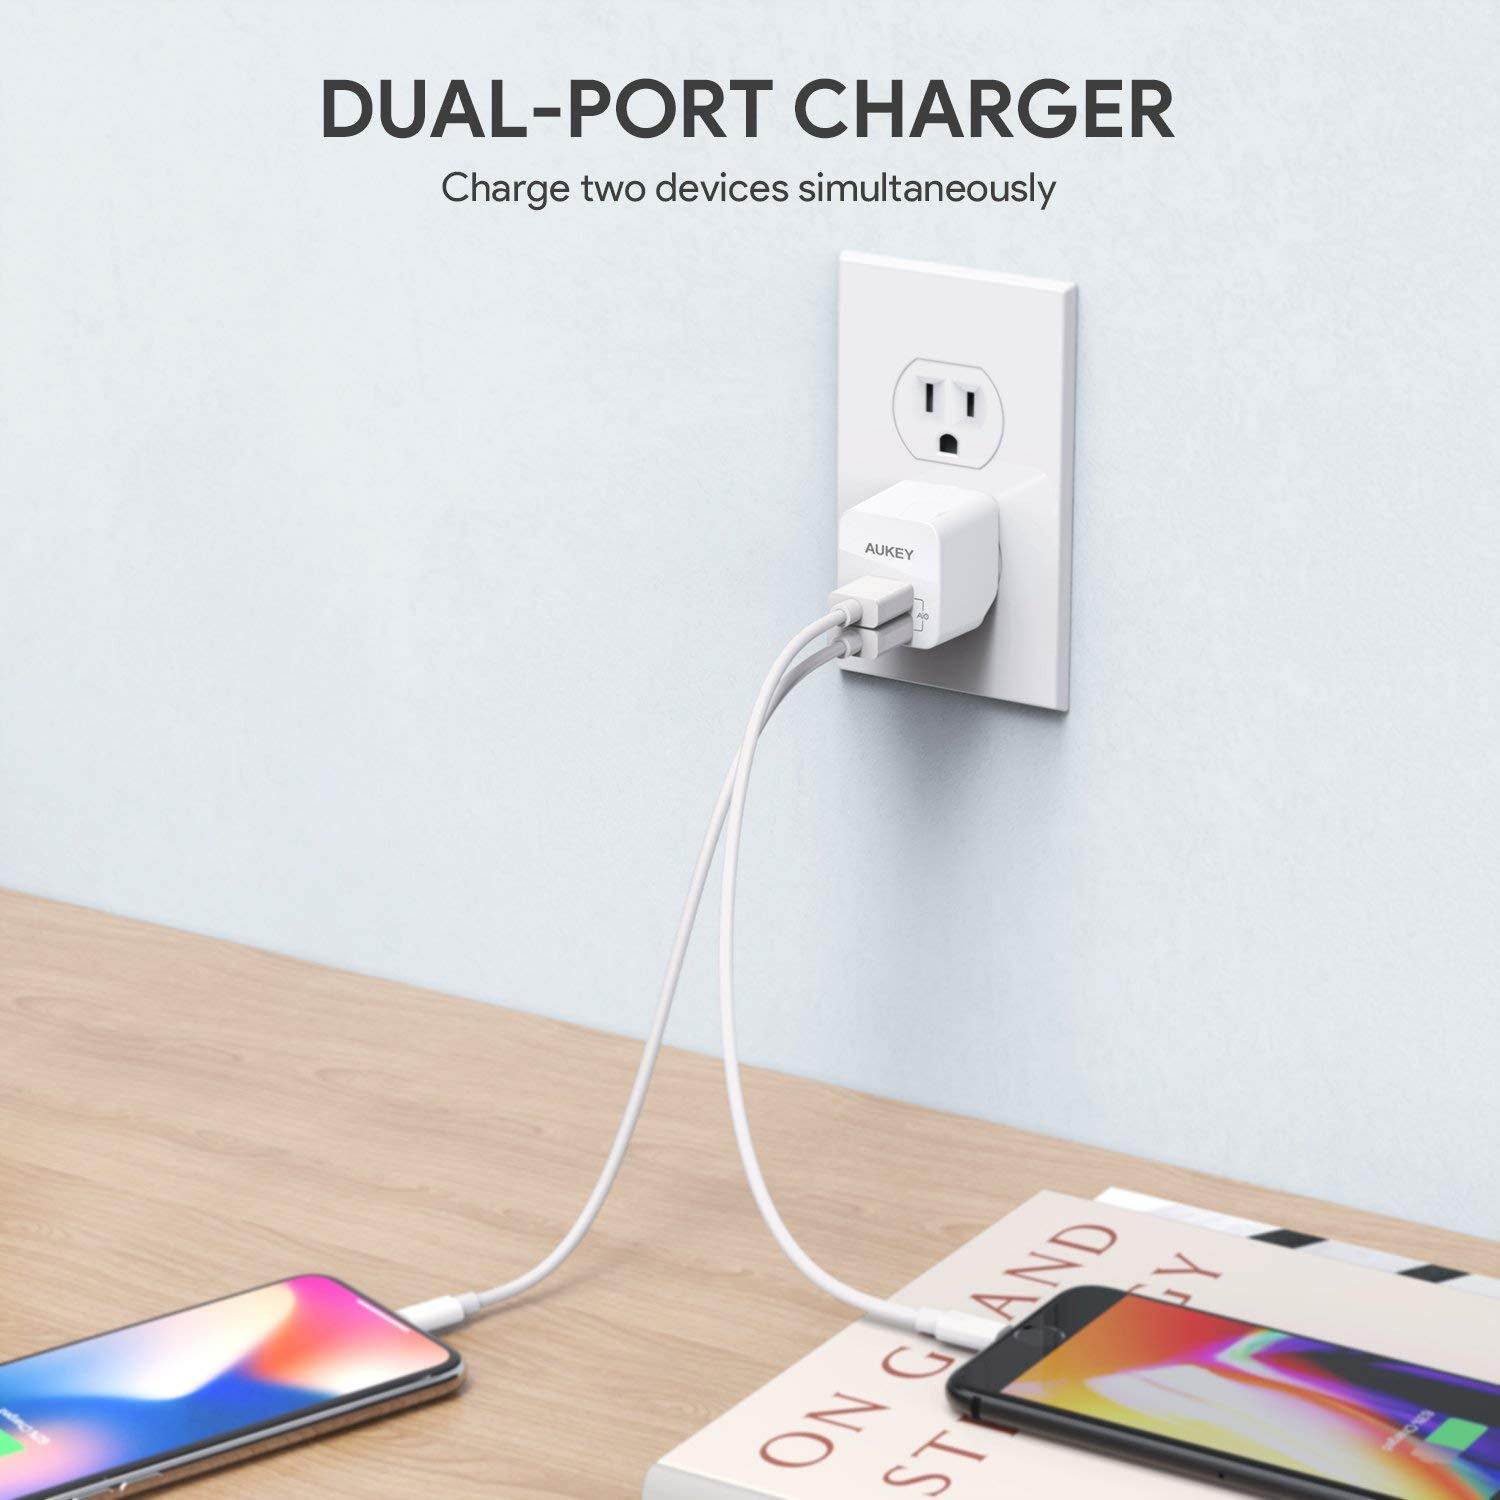 AUKEY USB Wall Charger, Ultra Compact Dual Port 2.4A Output & Foldable Plug, Compatible iPhone Xs/XS Max/XR, iPad Pro/Air 2 / Mini 4, Samsung, and More by AUKEY (Image #5)